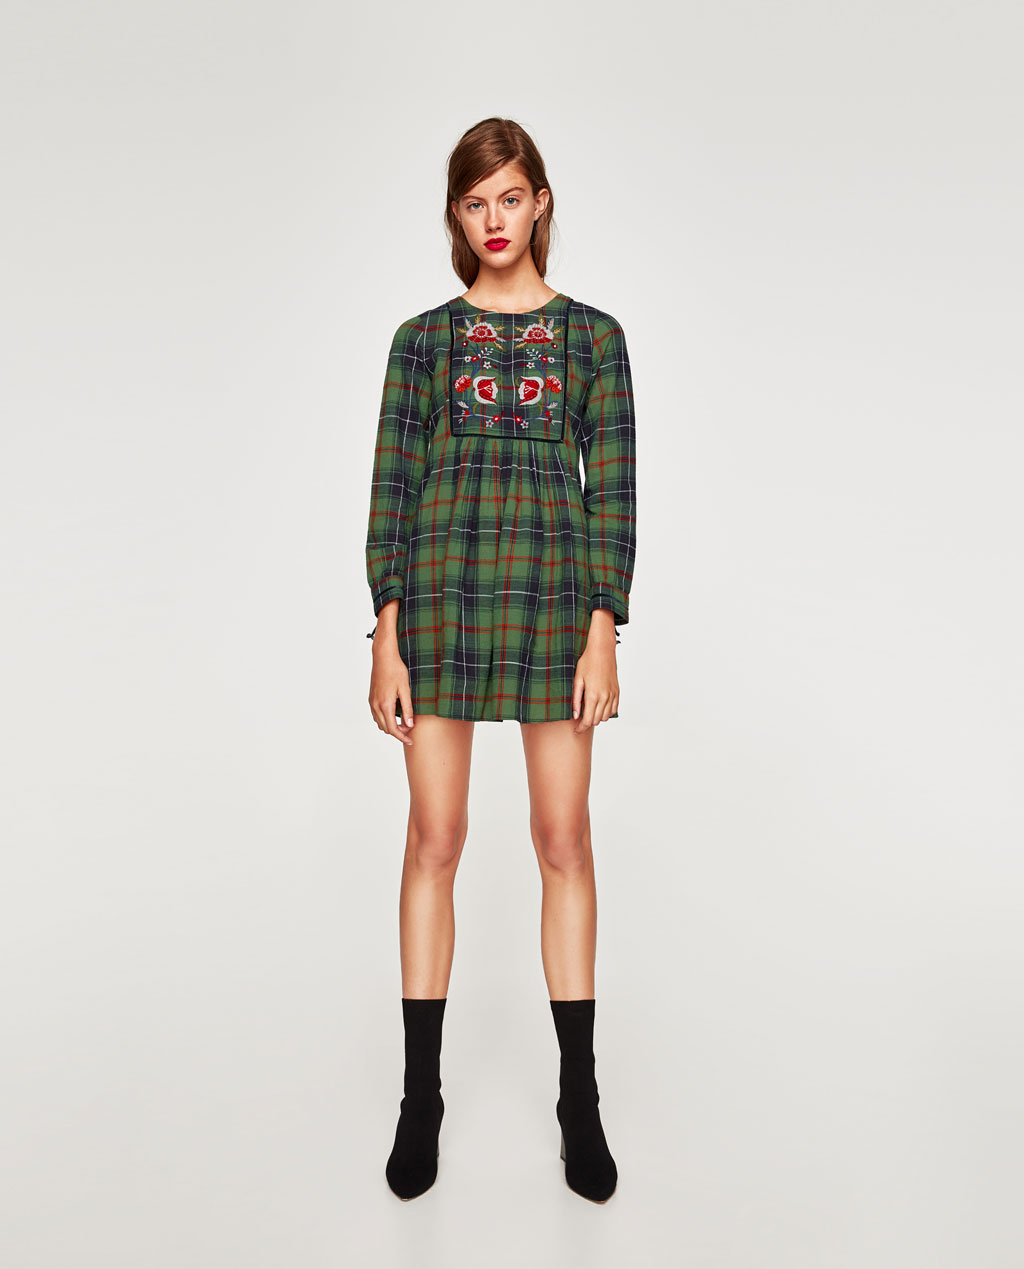 Zara - checked dress with floral embrodery